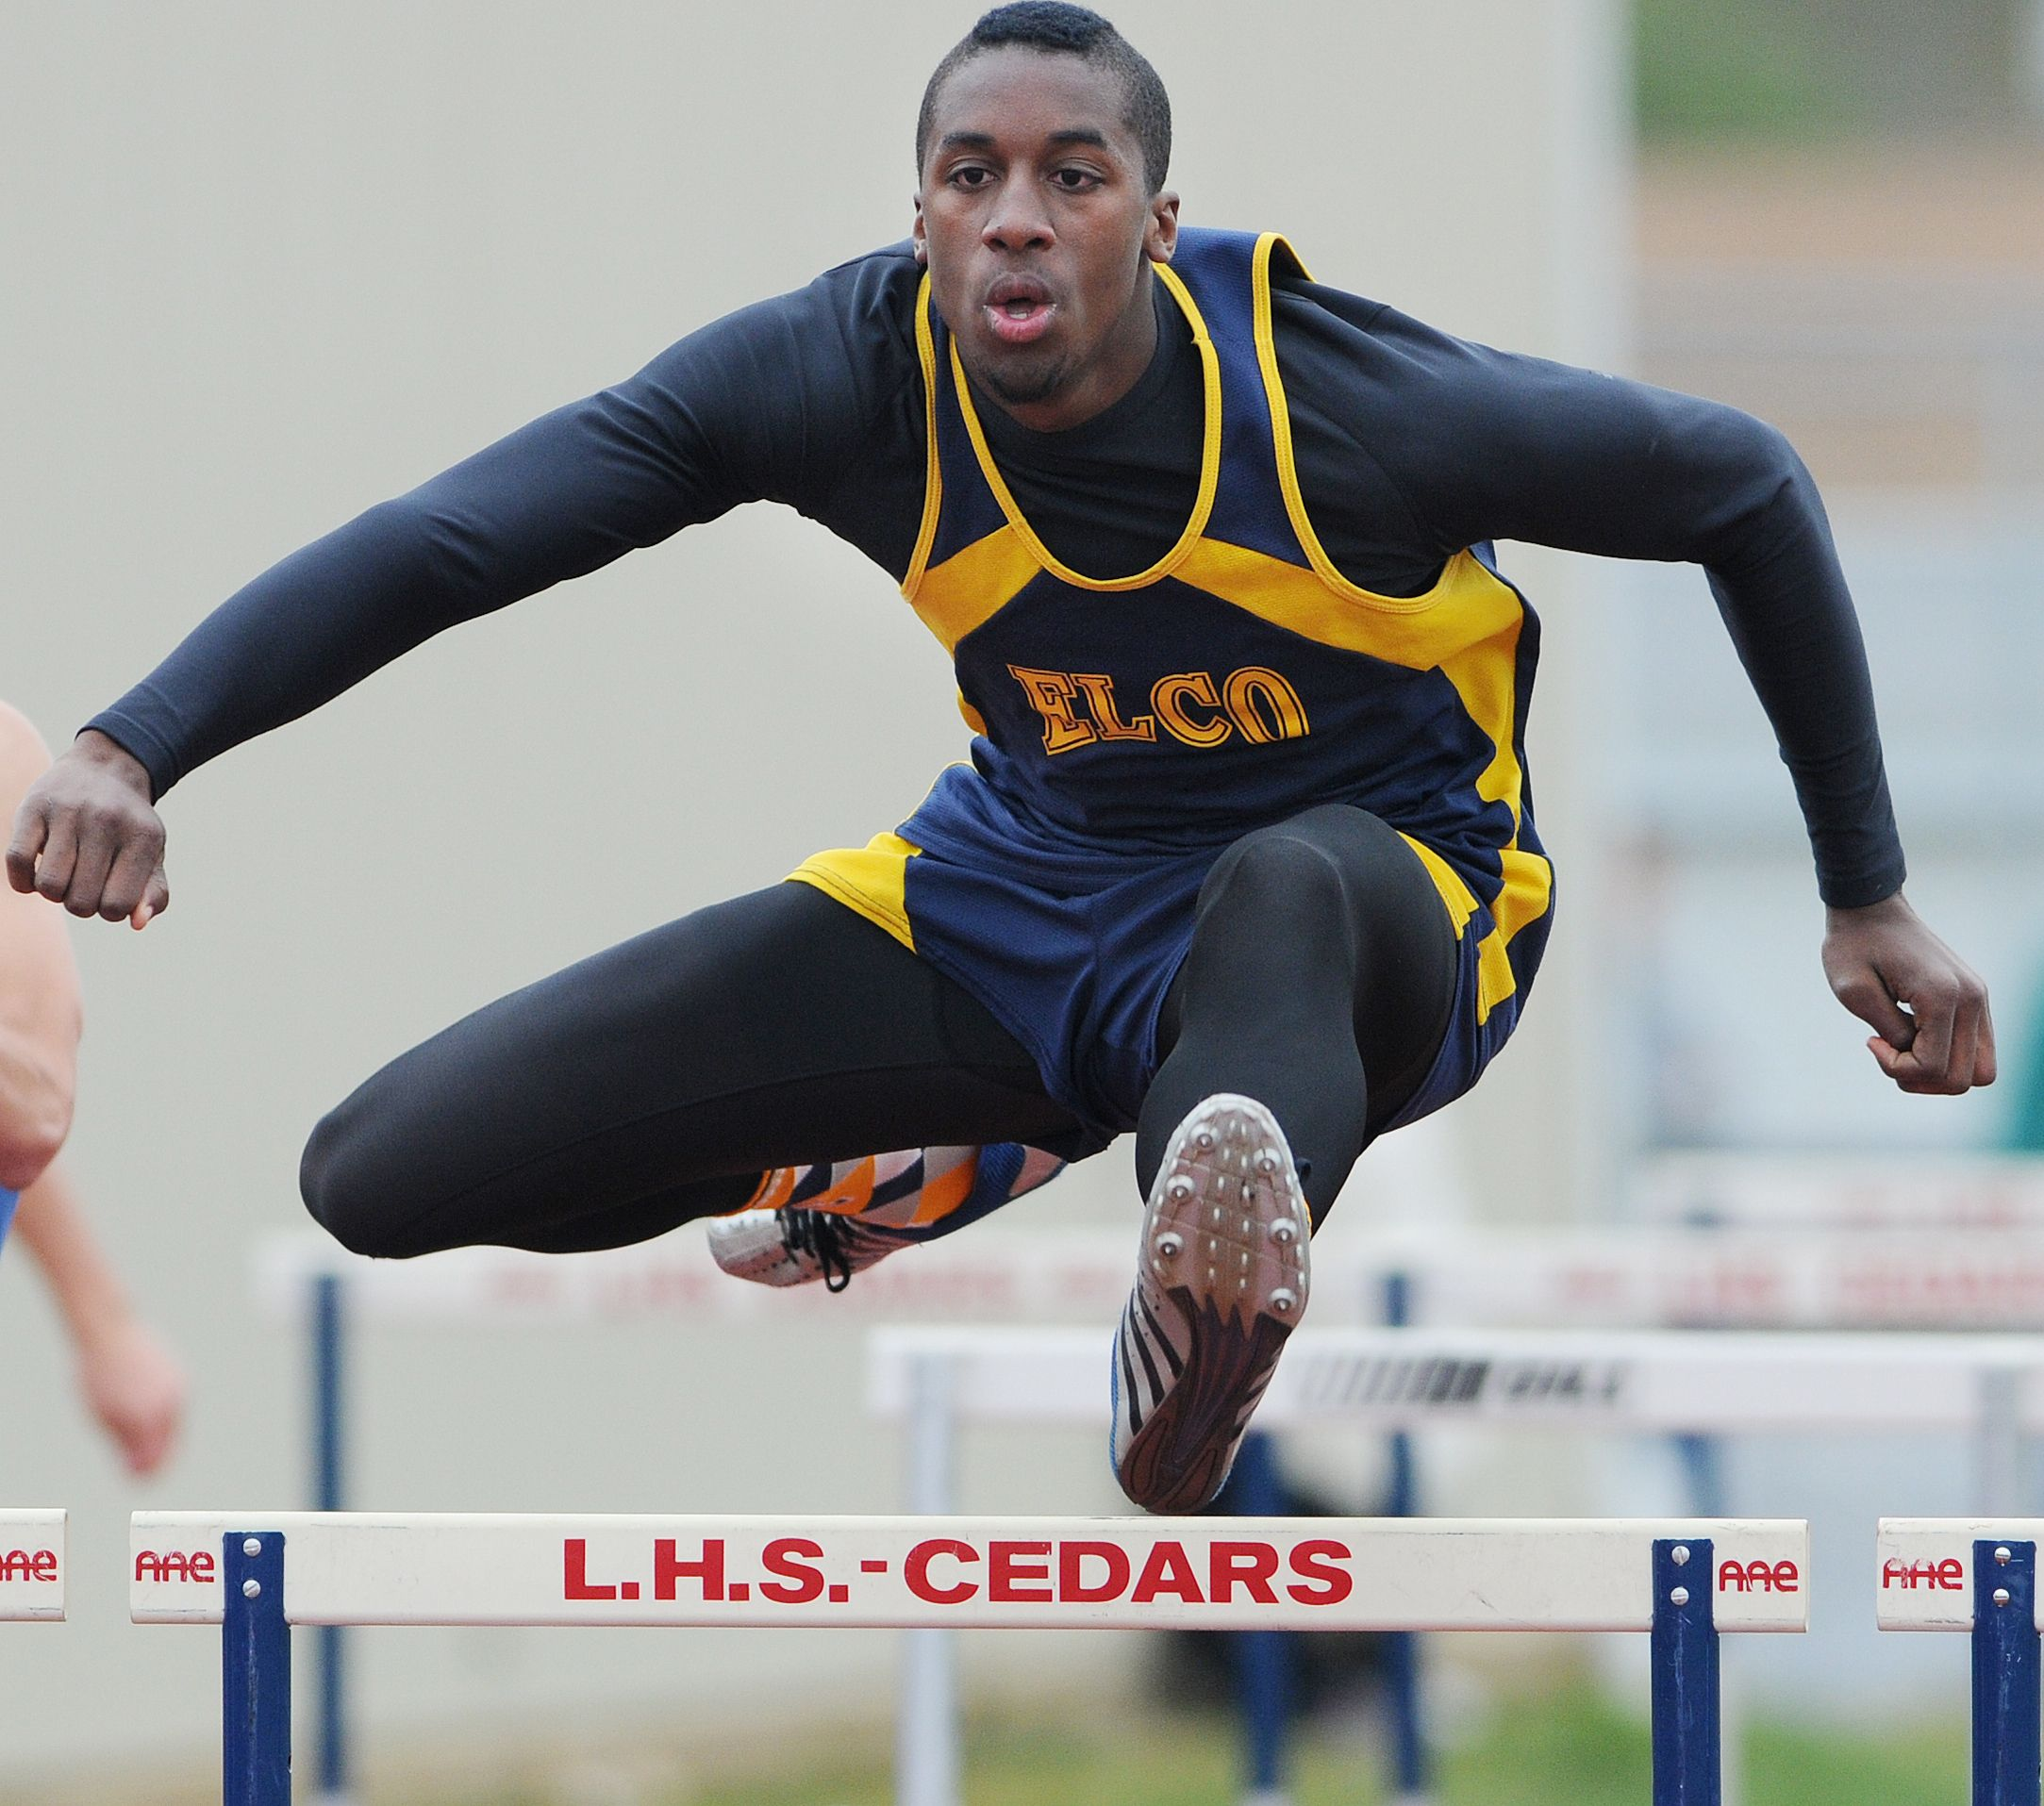 Elco's Nate Litschi soars over a hurdle on his way to a